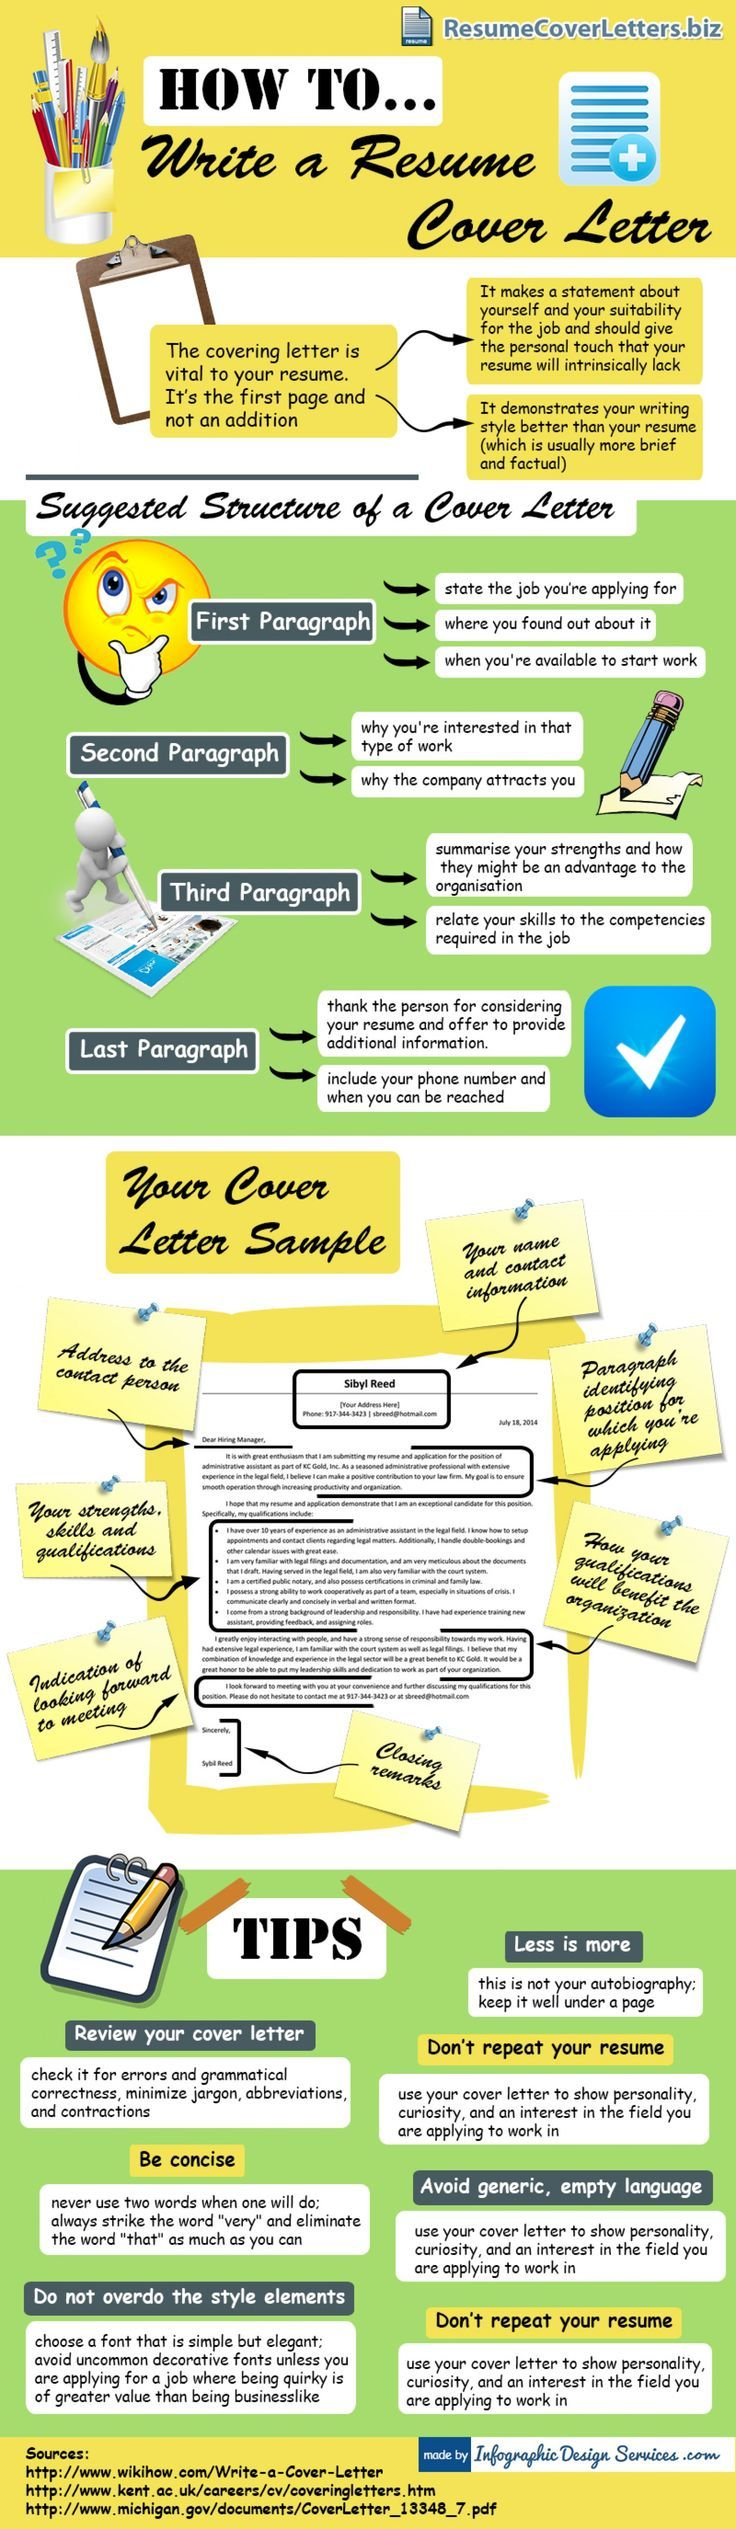 195 best images about resumes  cover letters  u0026 interview